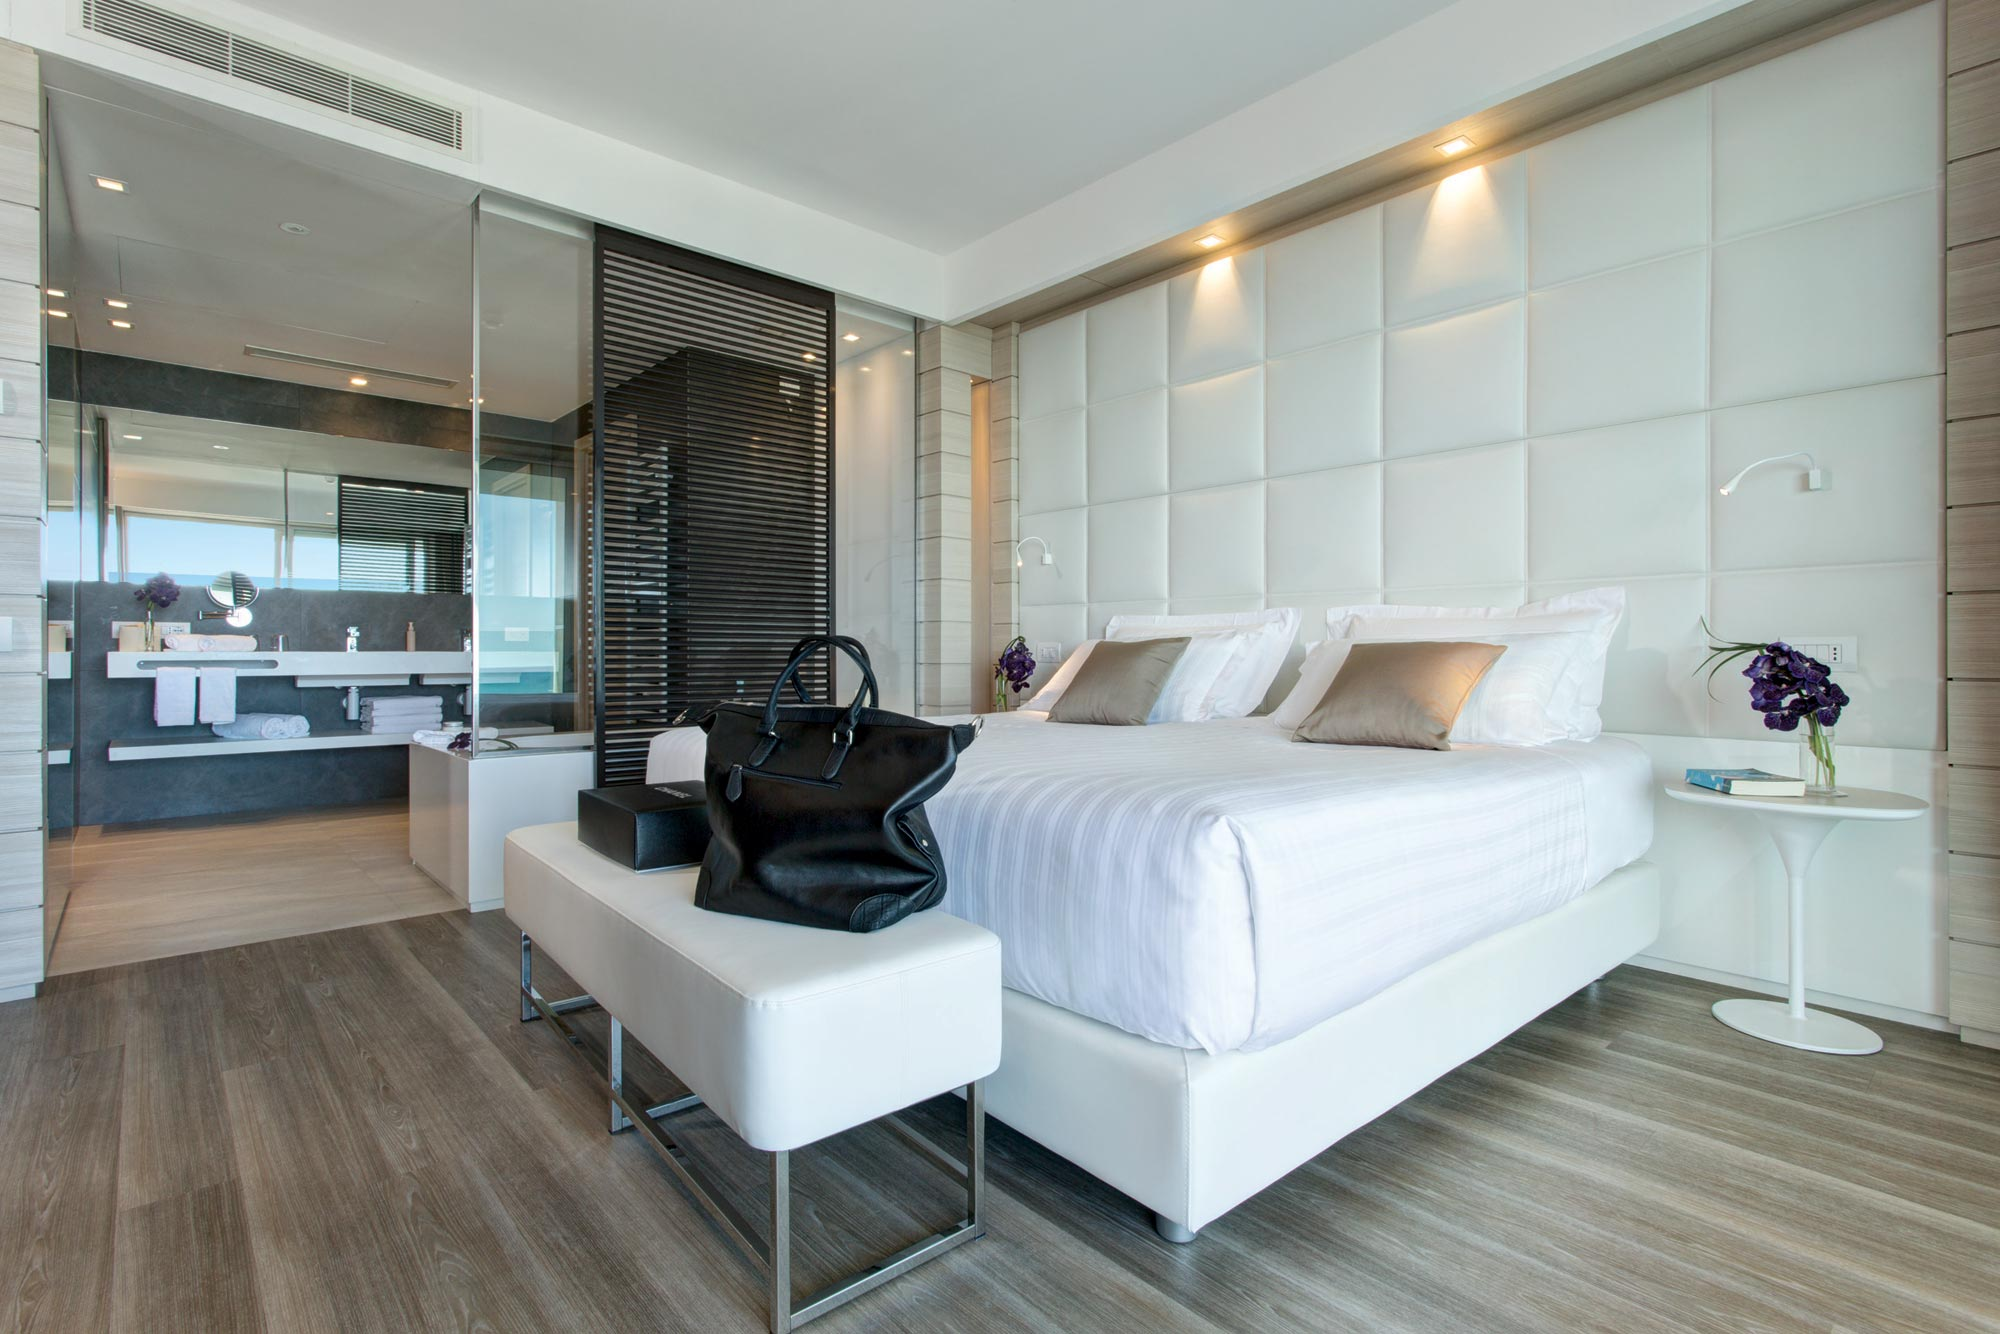 Bed of the Suite Prestige in Almar Jesolo Hotel